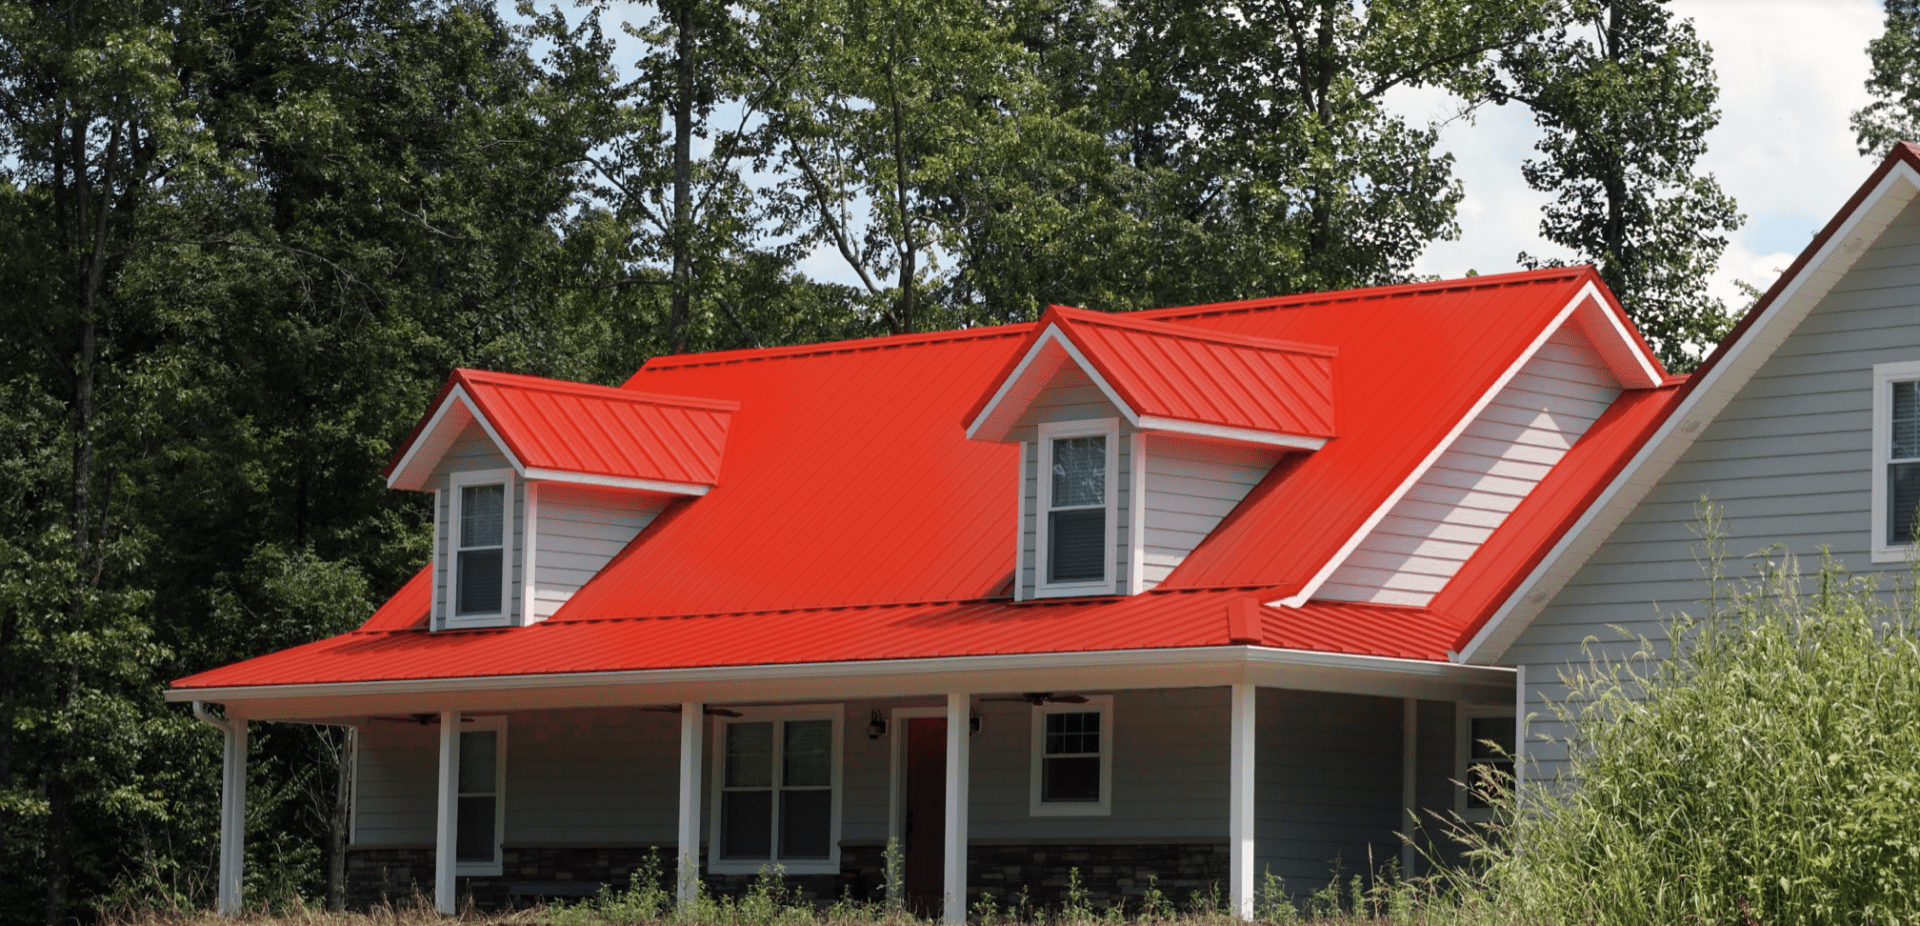 A house with a red roof